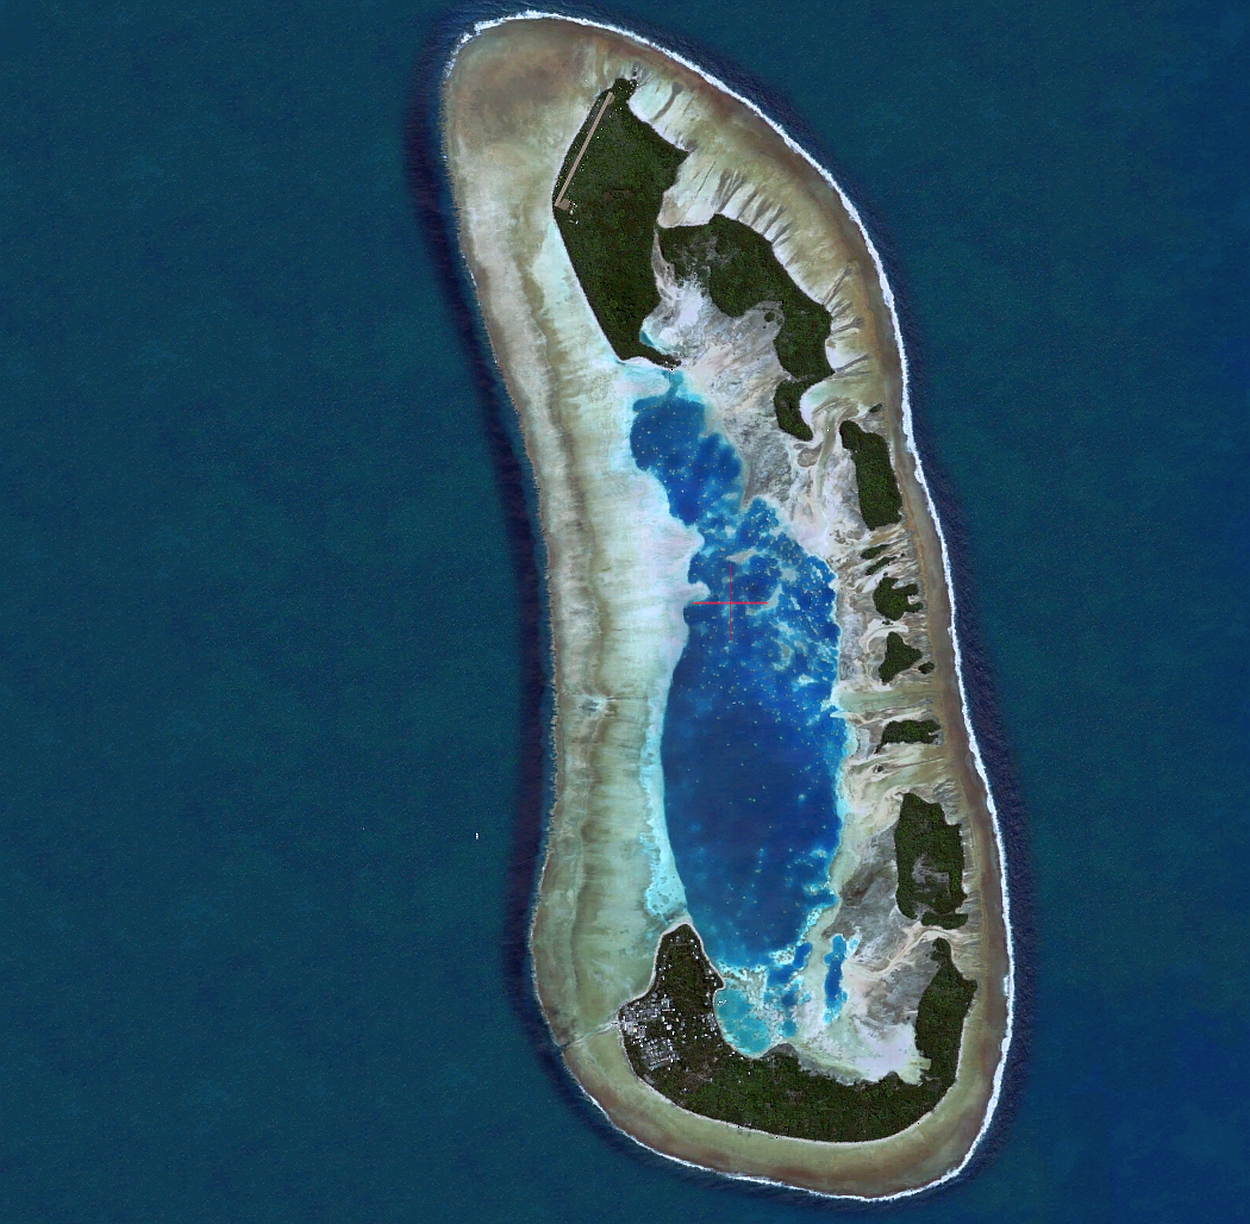 Review: PIS - Atolls of Tuvalu